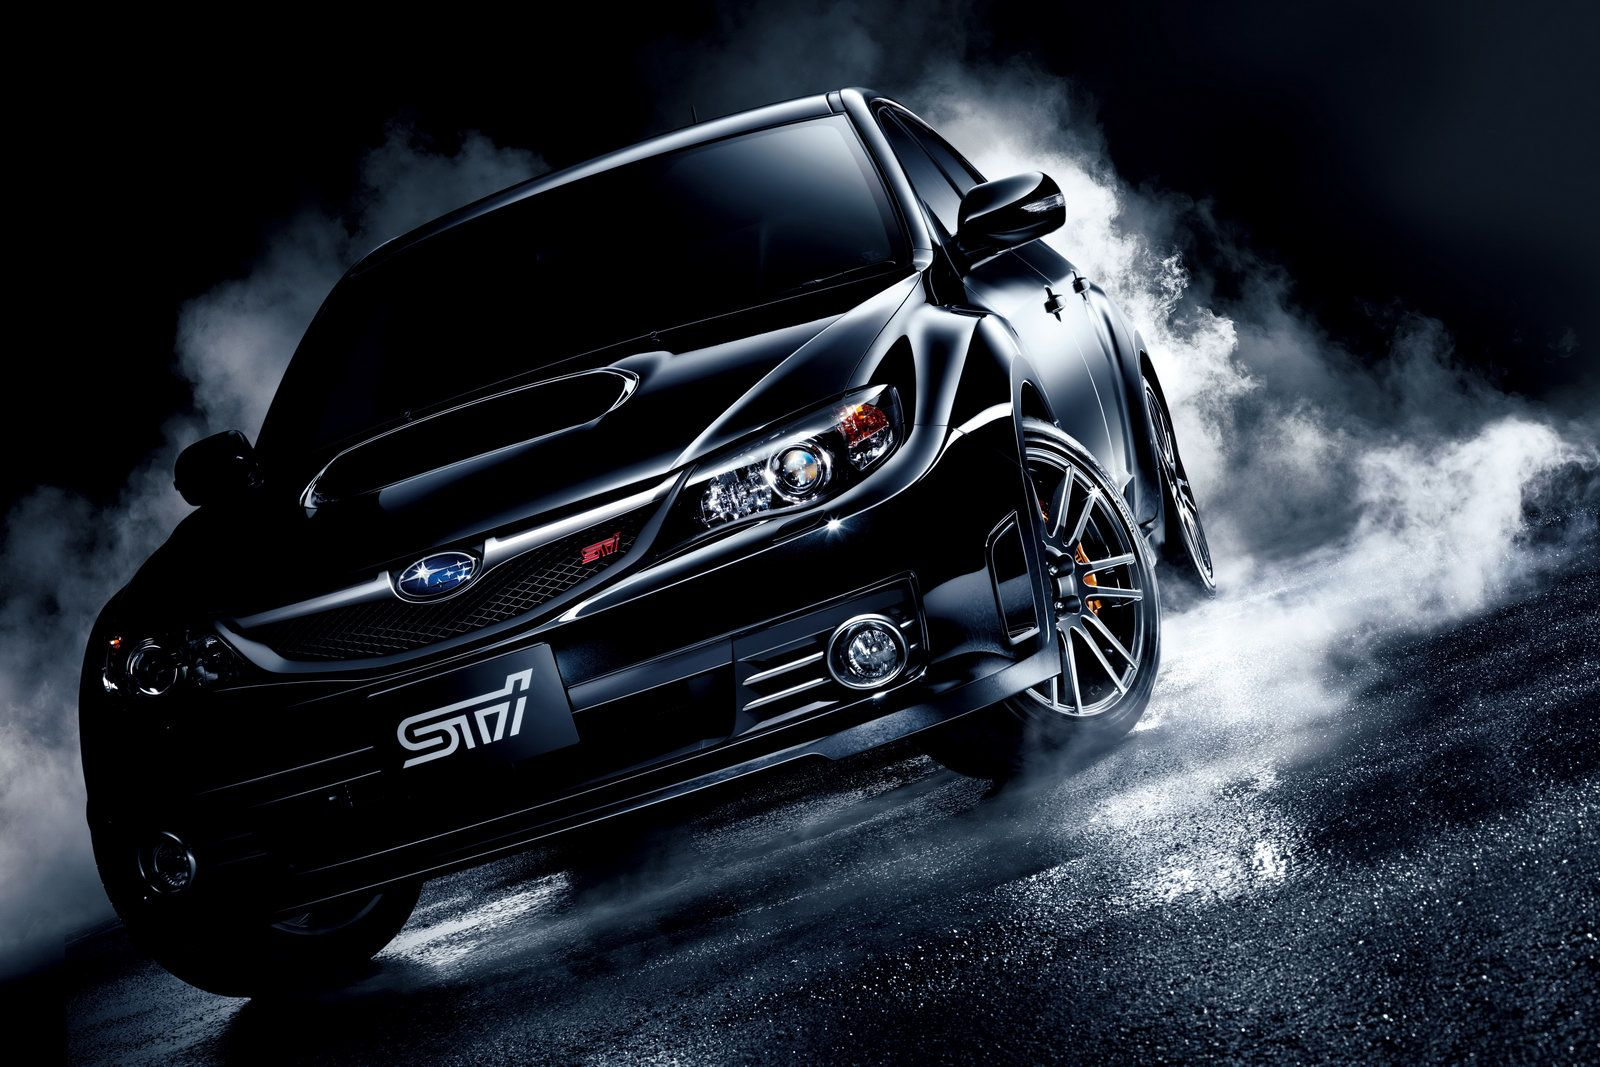 Subaru impreza wrx sti a very fast car for strong men http